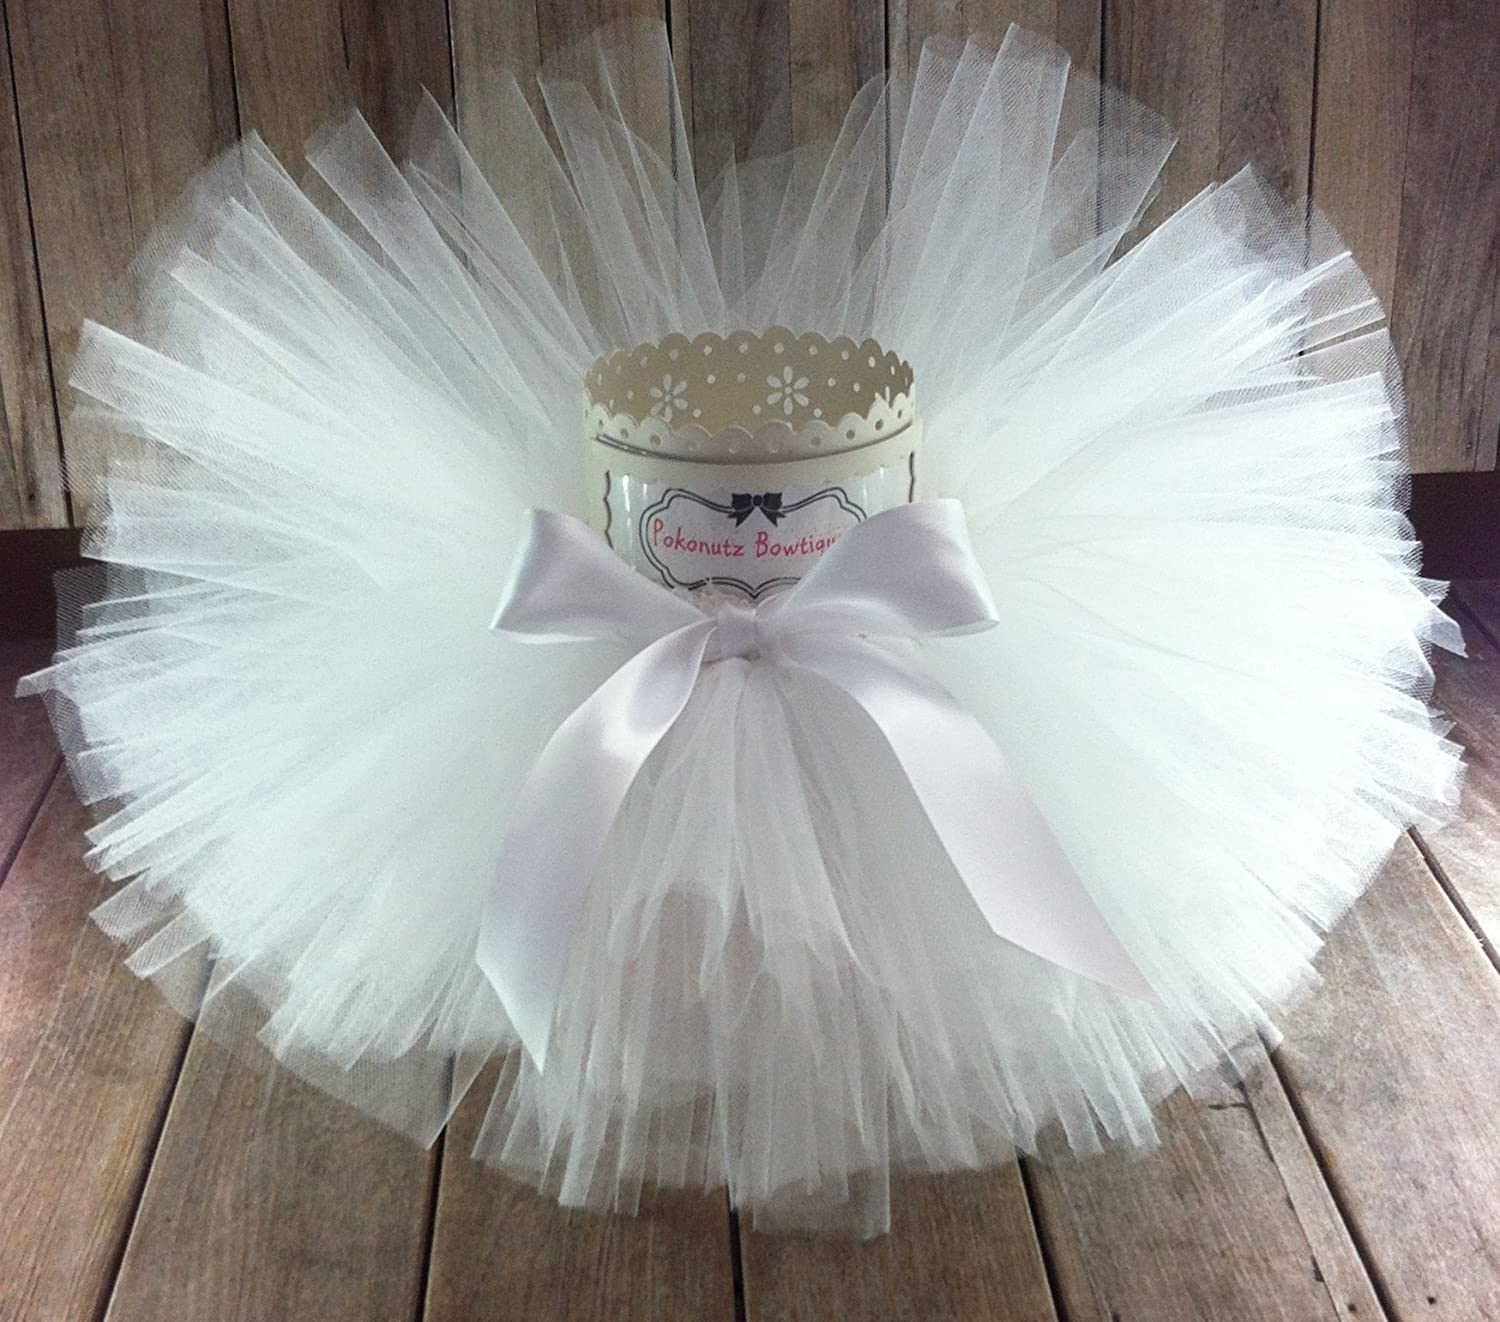 White Tutu, Baby Tutu, Toddler Tutu, Girls Tutu, Infant Tutu, Newborn Tutu, Baptism Tutu